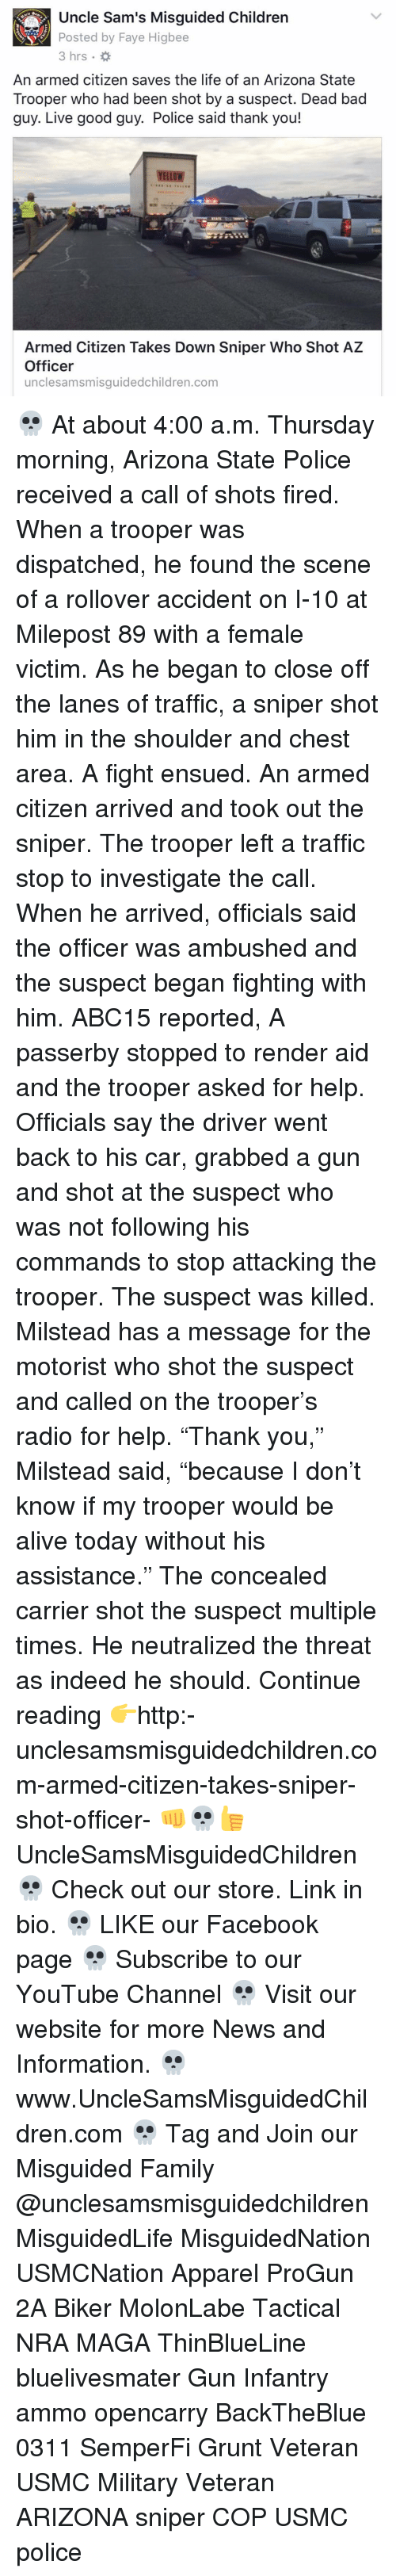 """Shot Fired: Uncle Sam's Misguided Children  Posted by Faye Higbee  3 hrs.  An armed citizen saves the life of an Arizona State  Trooper who had been shot by a suspect. Dead bad  guy. Live good guy. Police said thank you!  YELLOW  Armed Citizen Takes Down Sniper Who Shot AZ  Officer  unclesamsmisguidedchildren.com 💀 At about 4:00 a.m. Thursday morning, Arizona State Police received a call of shots fired. When a trooper was dispatched, he found the scene of a rollover accident on I-10 at Milepost 89 with a female victim. As he began to close off the lanes of traffic, a sniper shot him in the shoulder and chest area. A fight ensued. An armed citizen arrived and took out the sniper. The trooper left a traffic stop to investigate the call. When he arrived, officials said the officer was ambushed and the suspect began fighting with him. ABC15 reported, A passerby stopped to render aid and the trooper asked for help. Officials say the driver went back to his car, grabbed a gun and shot at the suspect who was not following his commands to stop attacking the trooper. The suspect was killed. Milstead has a message for the motorist who shot the suspect and called on the trooper's radio for help. """"Thank you,"""" Milstead said, """"because I don't know if my trooper would be alive today without his assistance."""" The concealed carrier shot the suspect multiple times. He neutralized the threat as indeed he should. Continue reading 👉http:-unclesamsmisguidedchildren.com-armed-citizen-takes-sniper-shot-officer- 👊💀👍 UncleSamsMisguidedChildren 💀 Check out our store. Link in bio. 💀 LIKE our Facebook page 💀 Subscribe to our YouTube Channel 💀 Visit our website for more News and Information. 💀 www.UncleSamsMisguidedChildren.com 💀 Tag and Join our Misguided Family @unclesamsmisguidedchildren MisguidedLife MisguidedNation USMCNation Apparel ProGun 2A Biker MolonLabe Tactical NRA MAGA ThinBlueLine bluelivesmater Gun Infantry ammo opencarry BackTheBlue 0311 SemperFi Grunt Veteran USMC Military Vetera"""